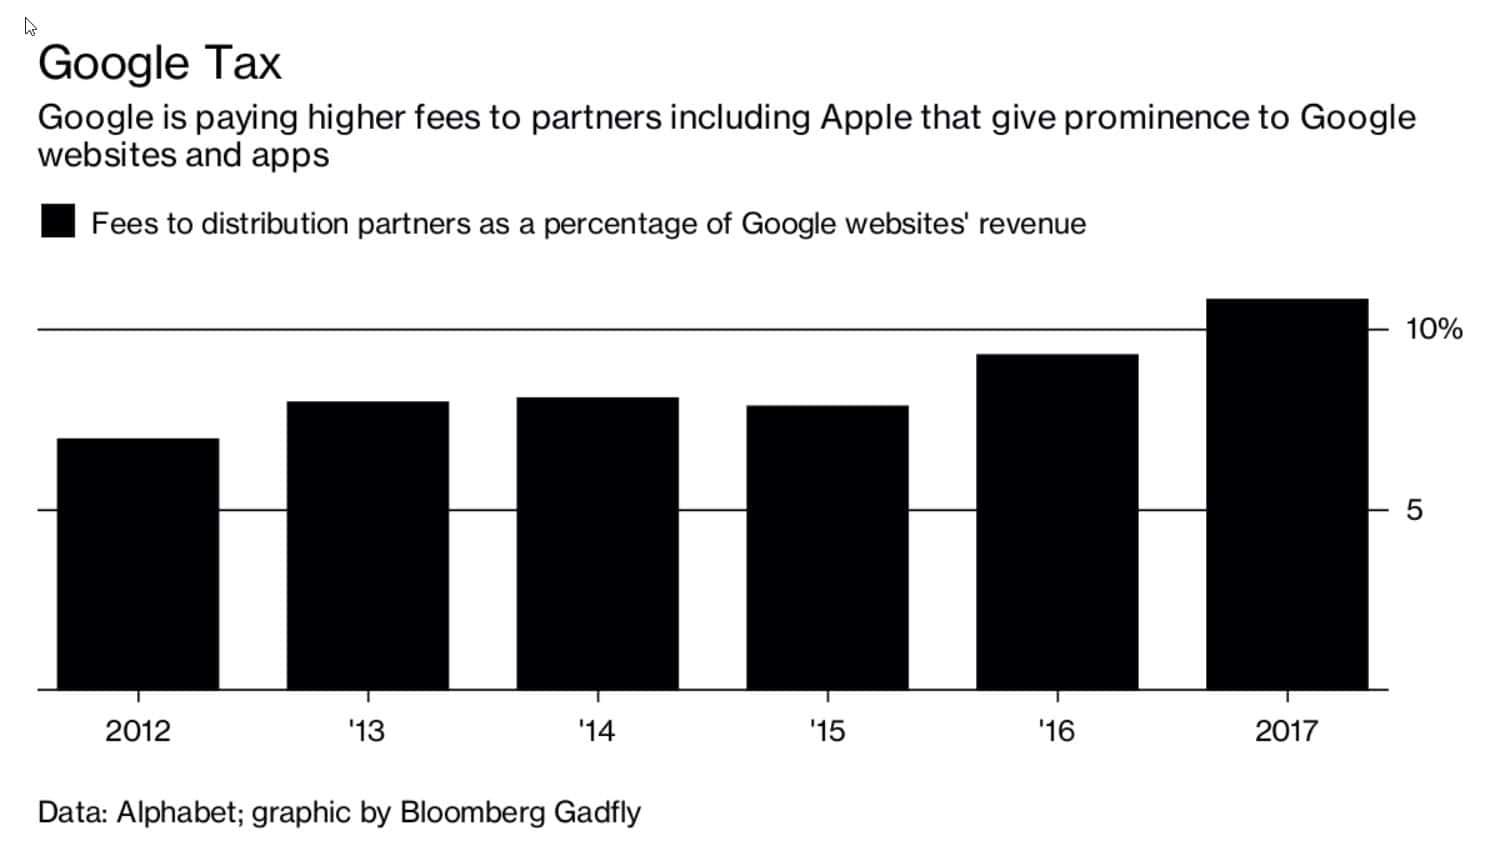 Bloomberg supplied Google Fee Payout Chart 2017